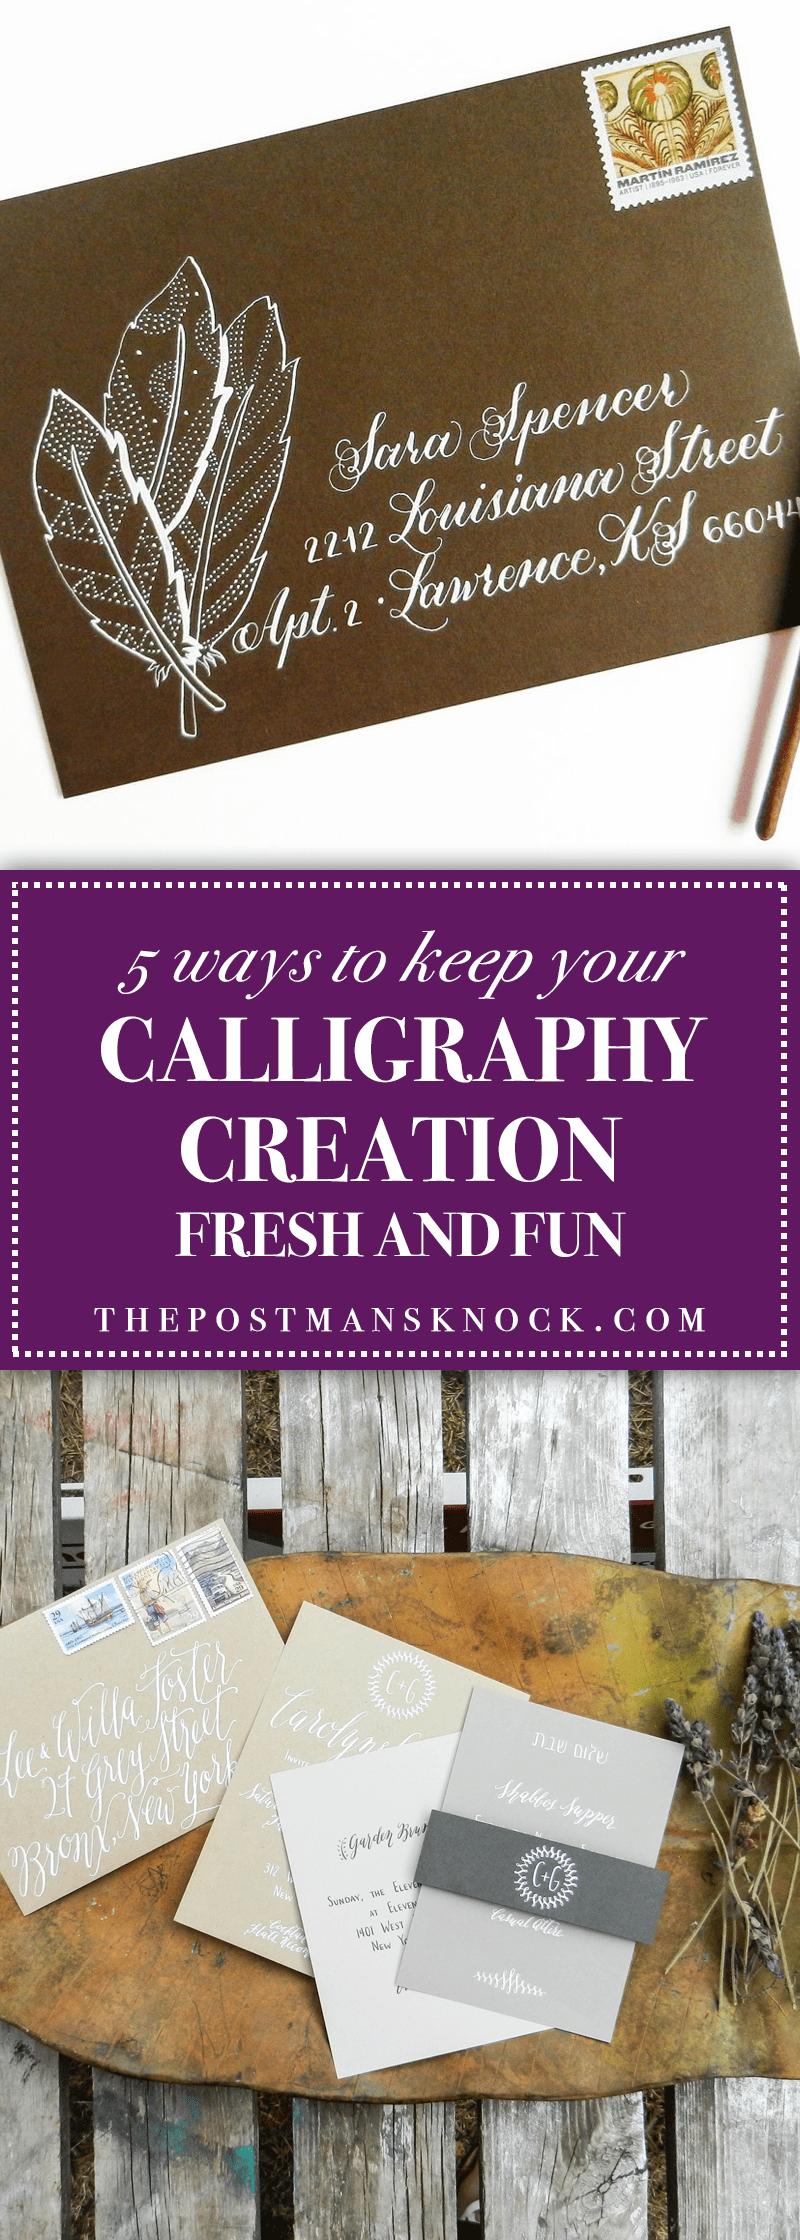 Keep Your Life On Track All Year Long: 5 Ways To Keep Your Calligraphy Creation Fresh And Fun